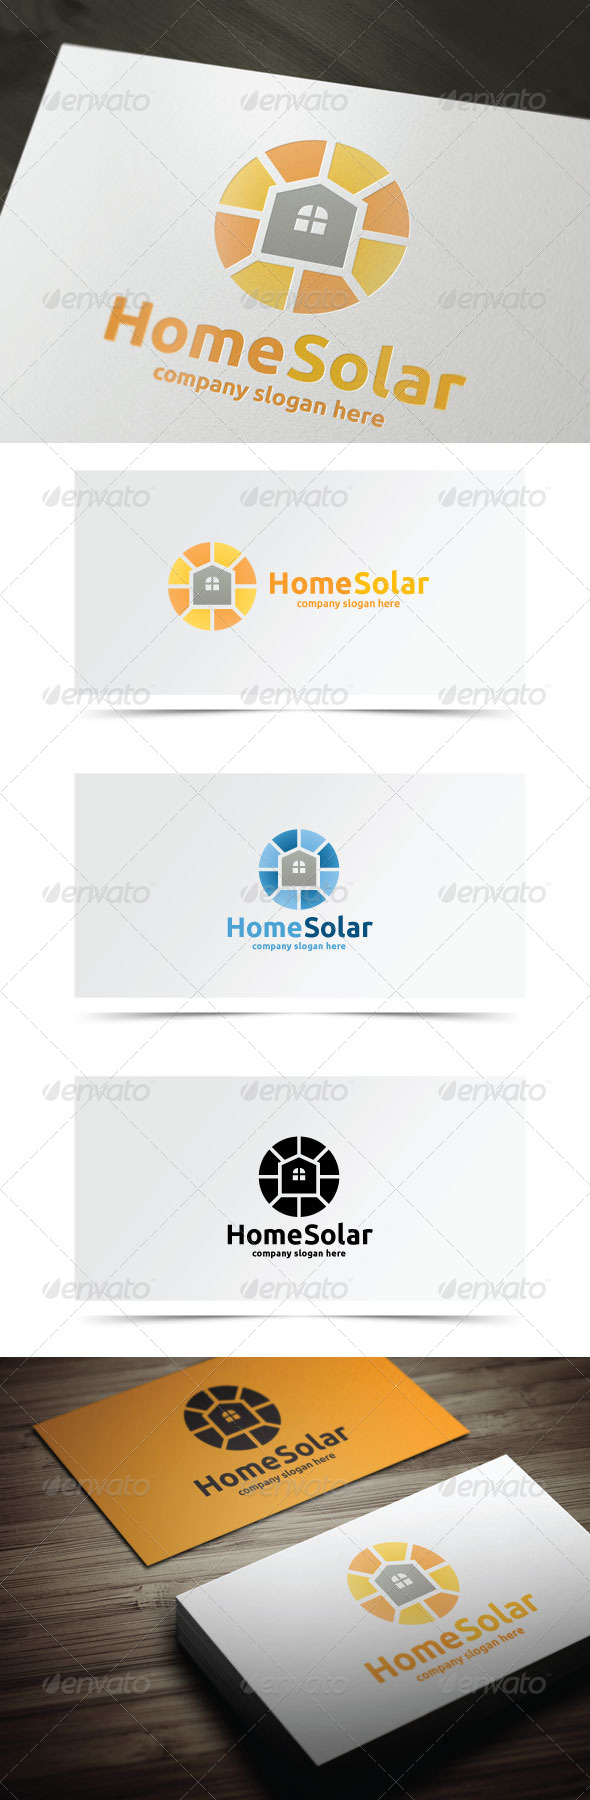 GraphicRiver Home Solar 8296203